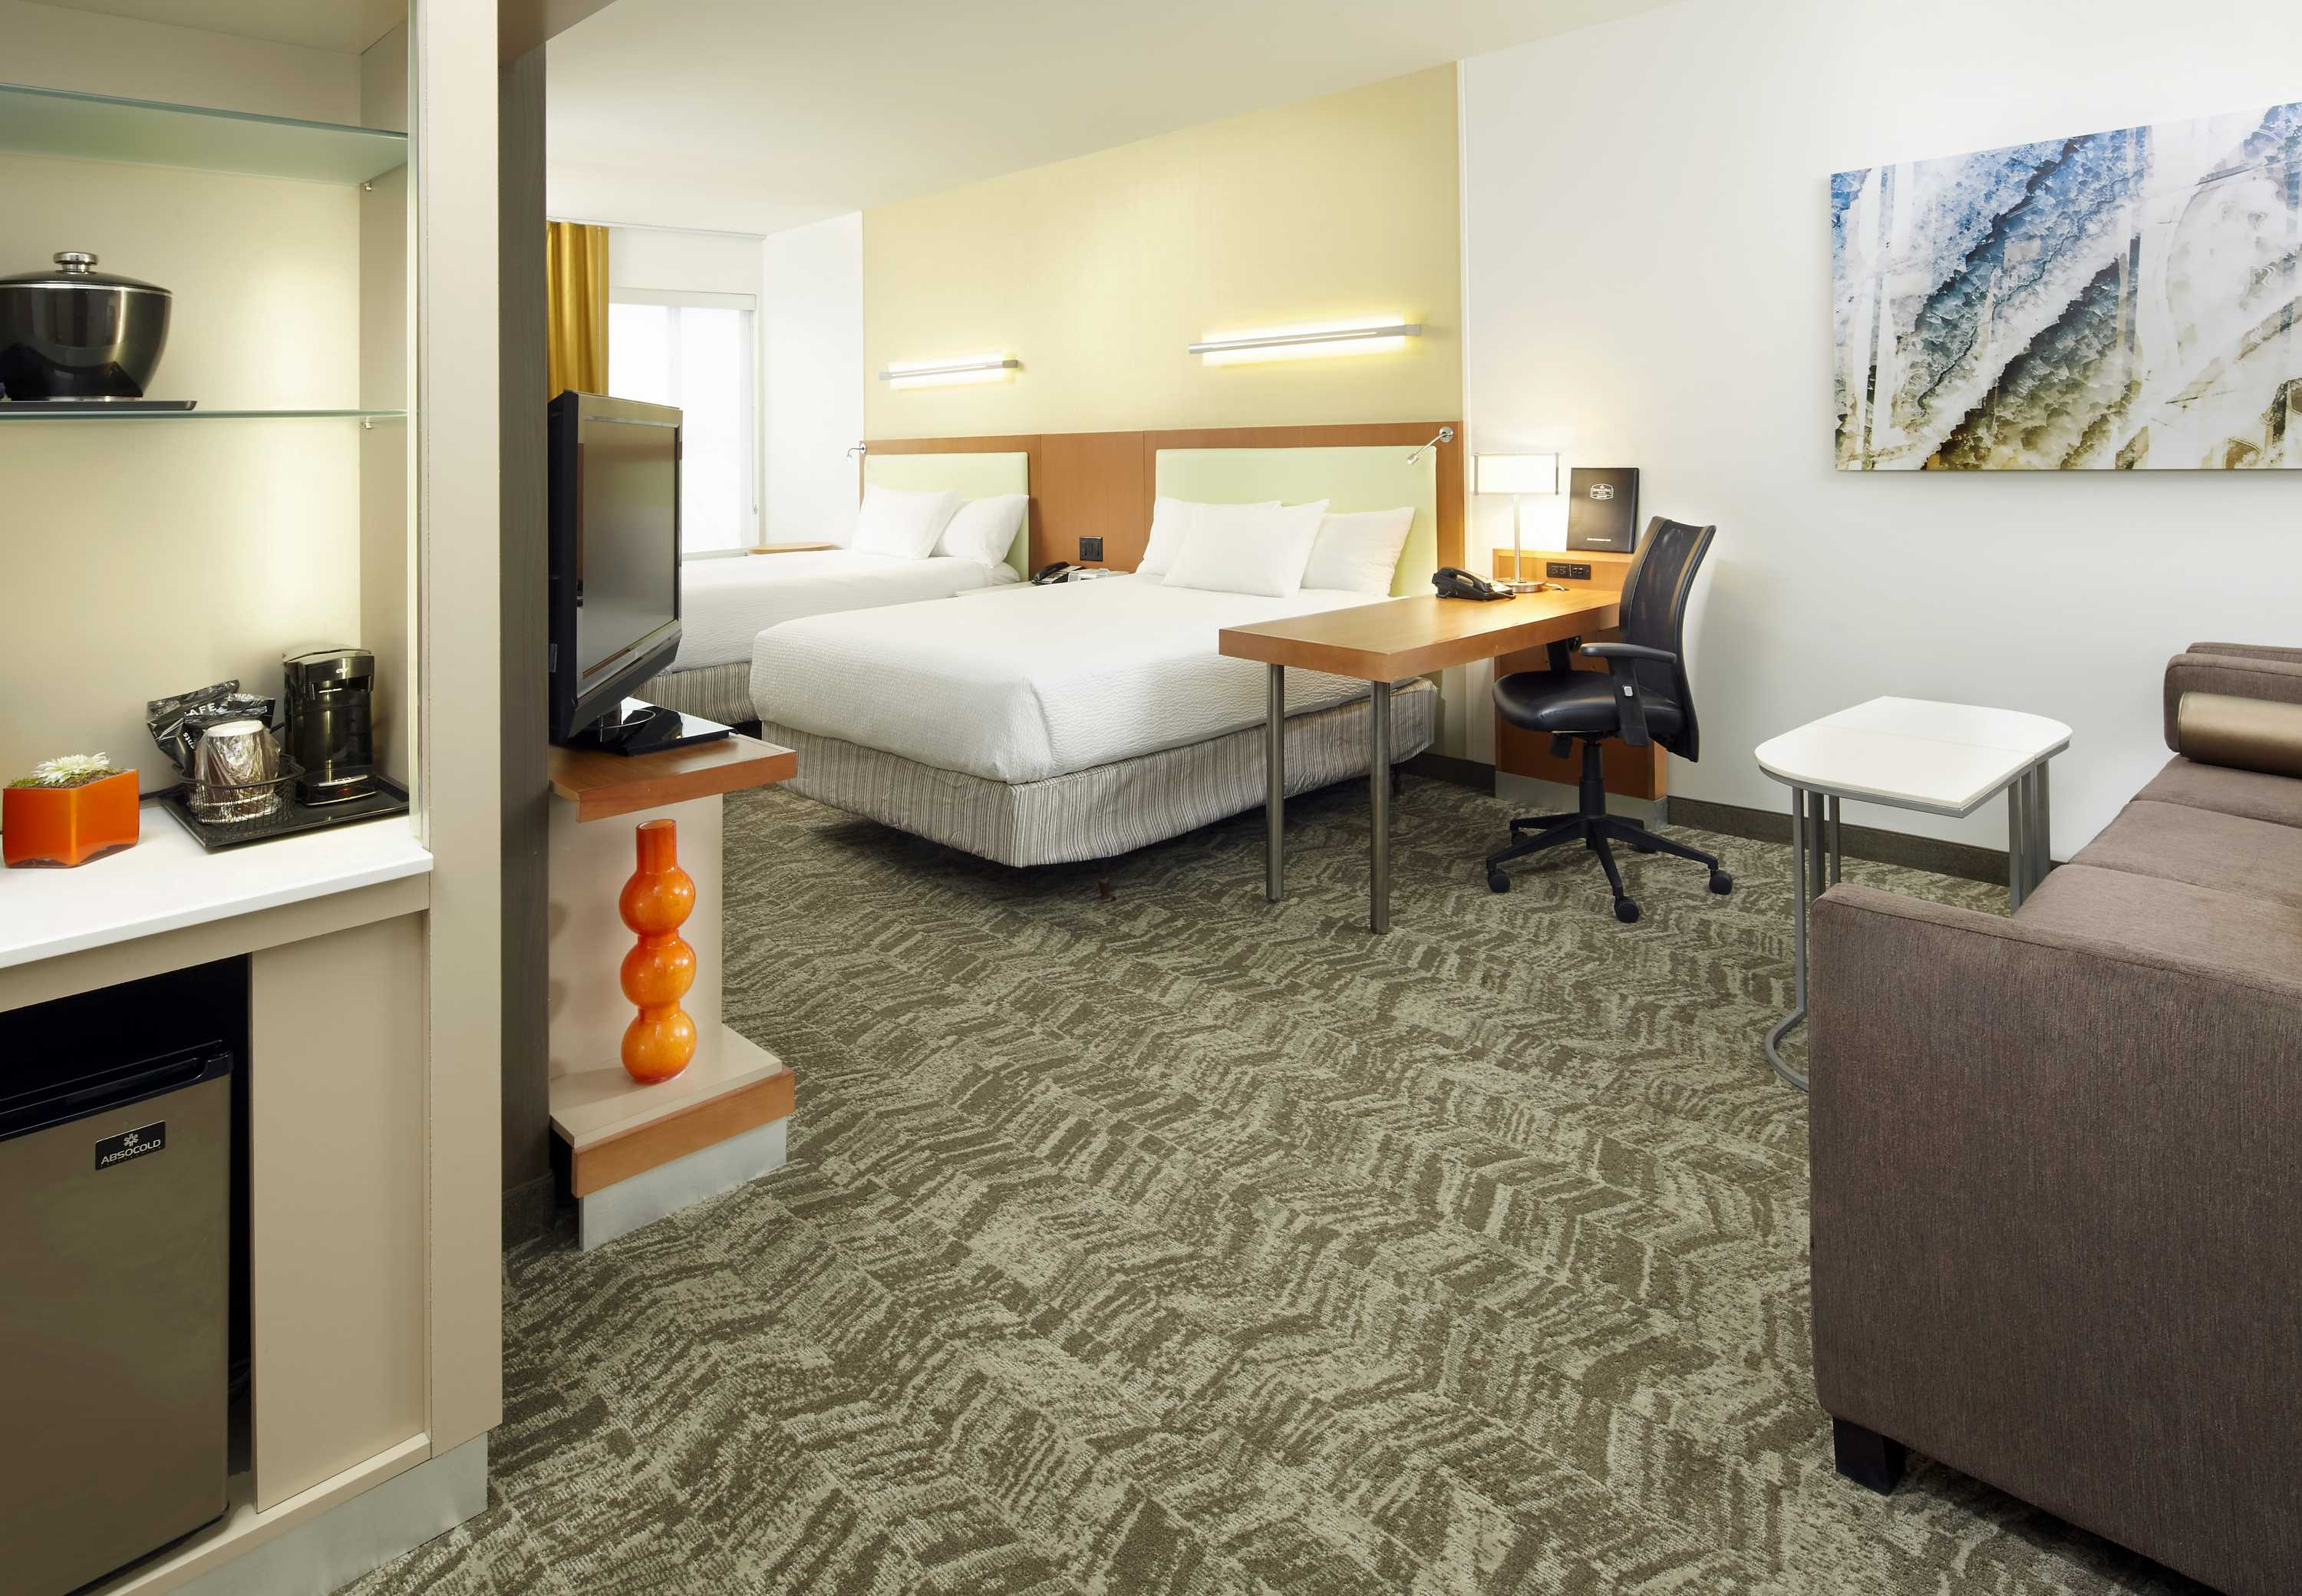 SpringHill Suites by Marriott Chicago Waukegan/Gurnee image 6